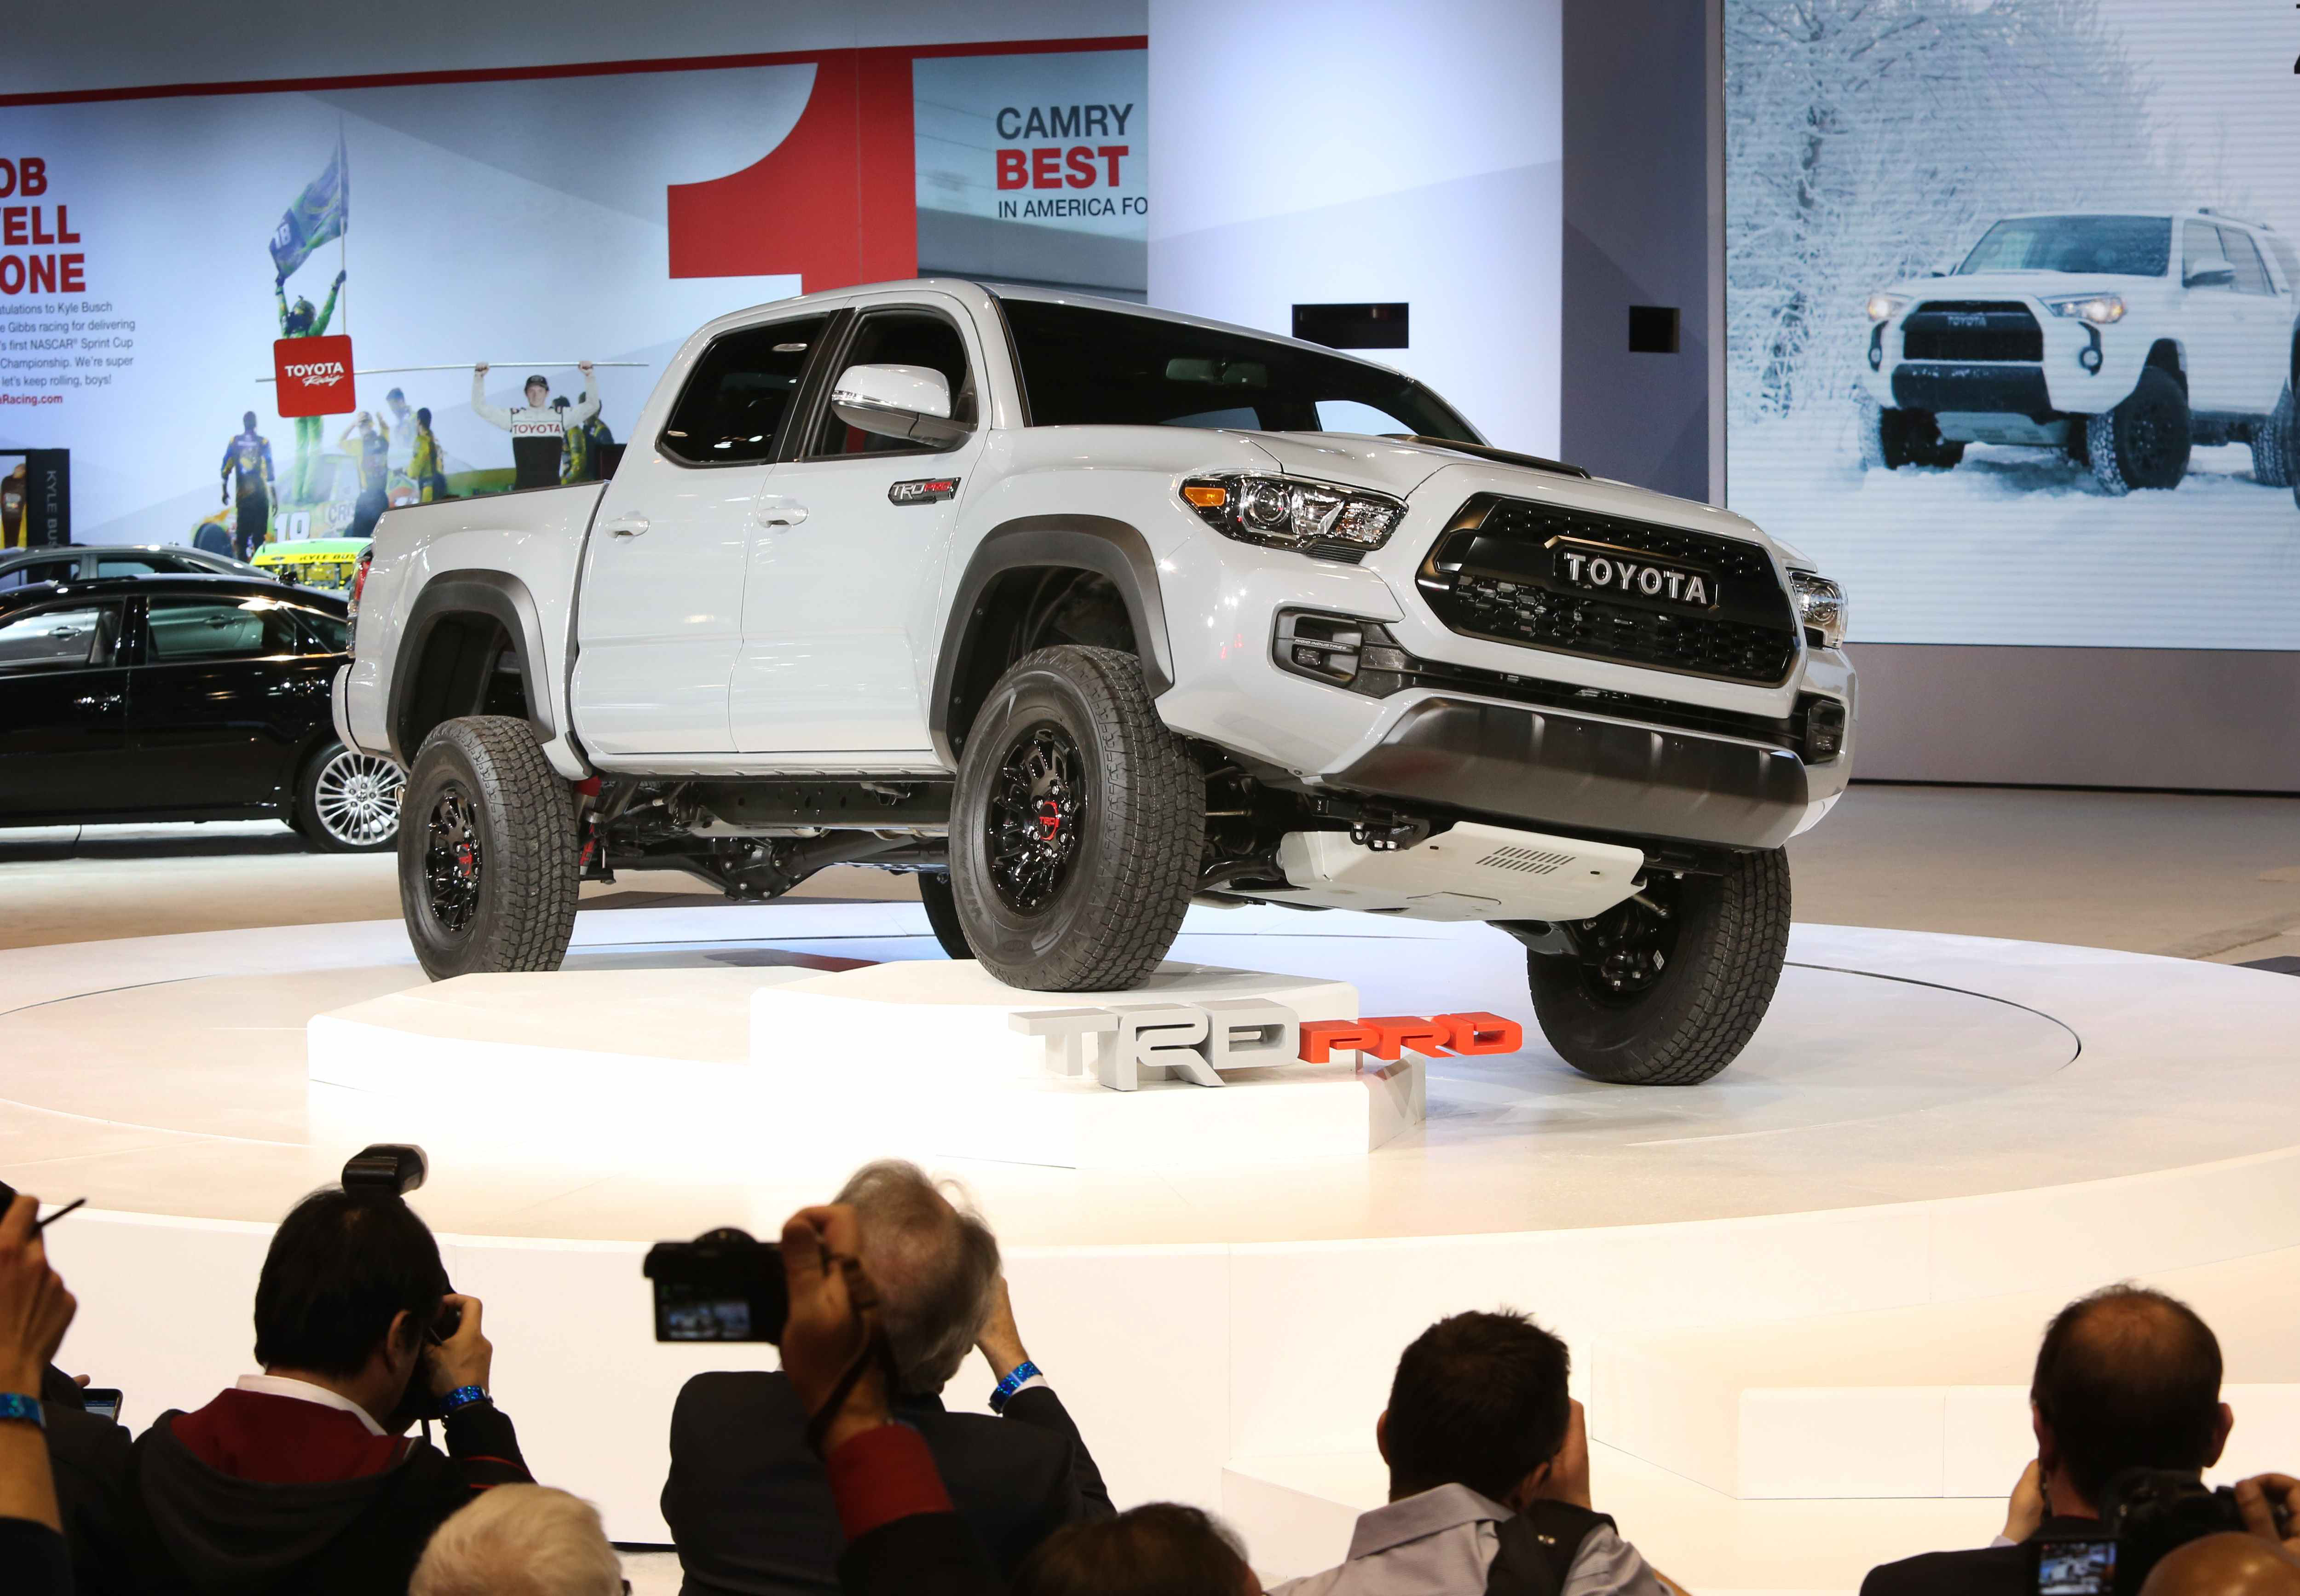 The Toyota 2017 Tacoma Trd Pro Was Unveiled This Week At Chicago Auto Show One Of Its Available Colors Is Super White